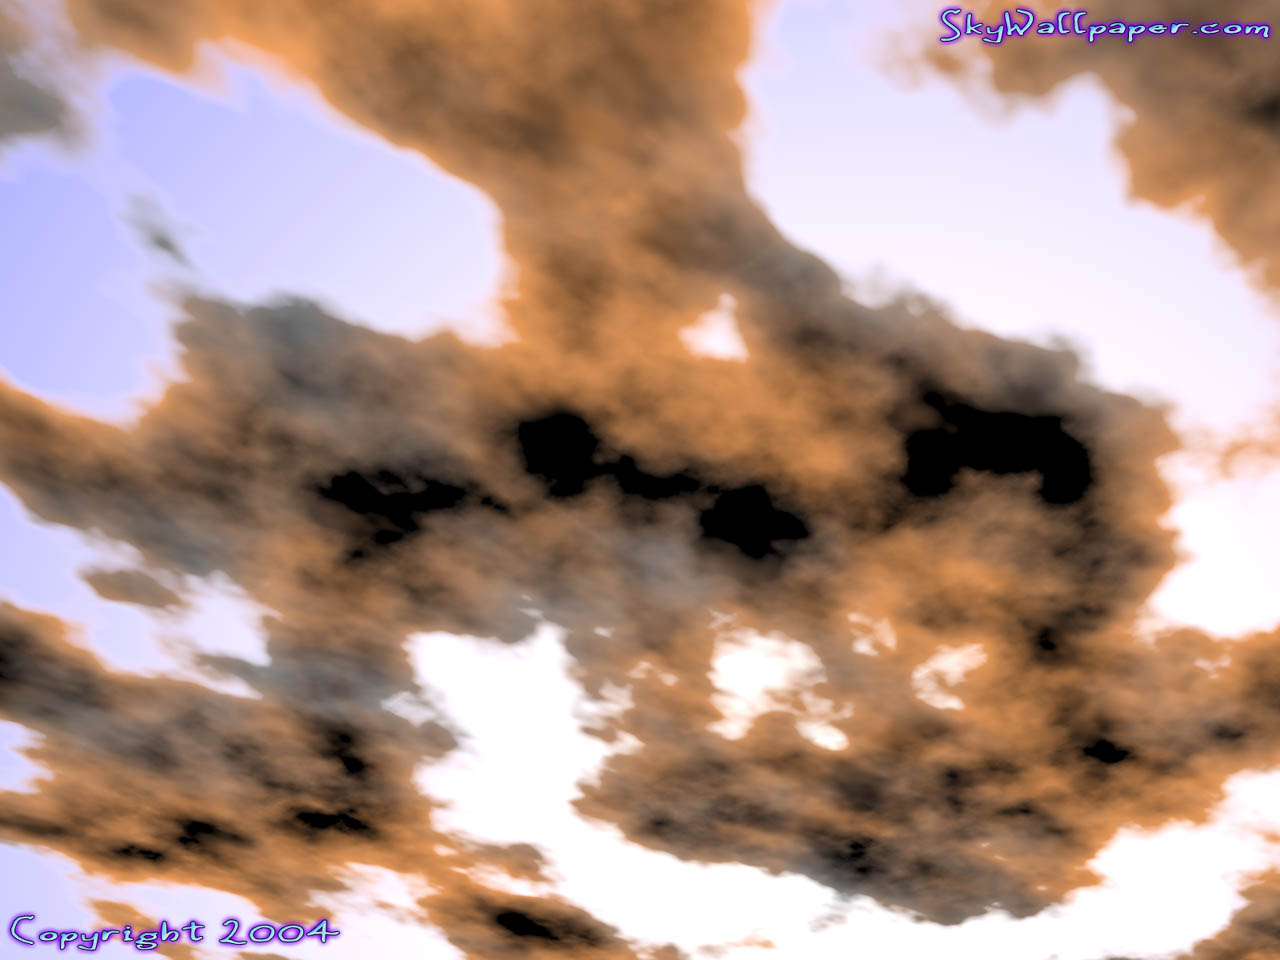 """Digital Sky Wallpaper Image"" - Wallpaper No. 88 of 109. Right click for saving options."